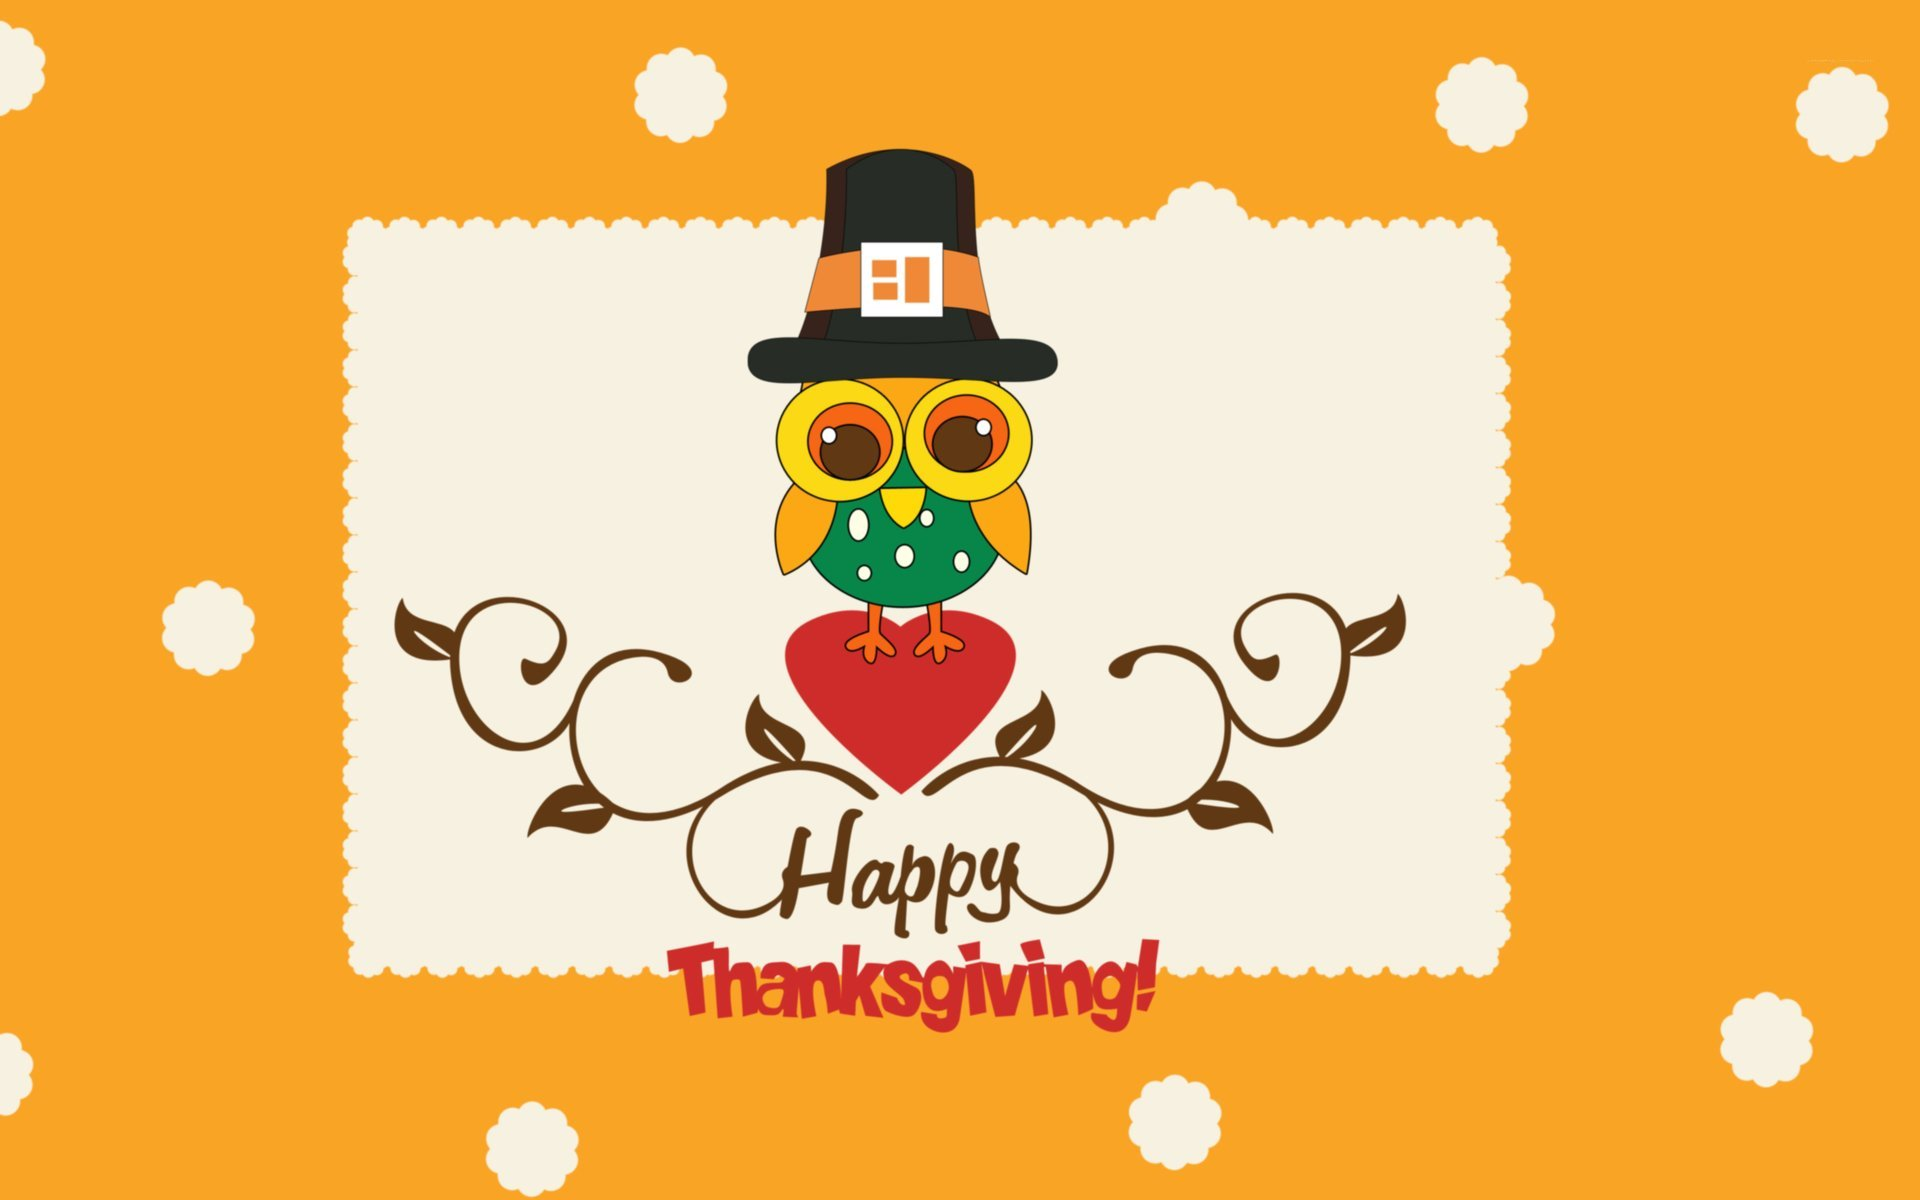 Cute-Owl-Thanksgiving-Wallpapers-hd